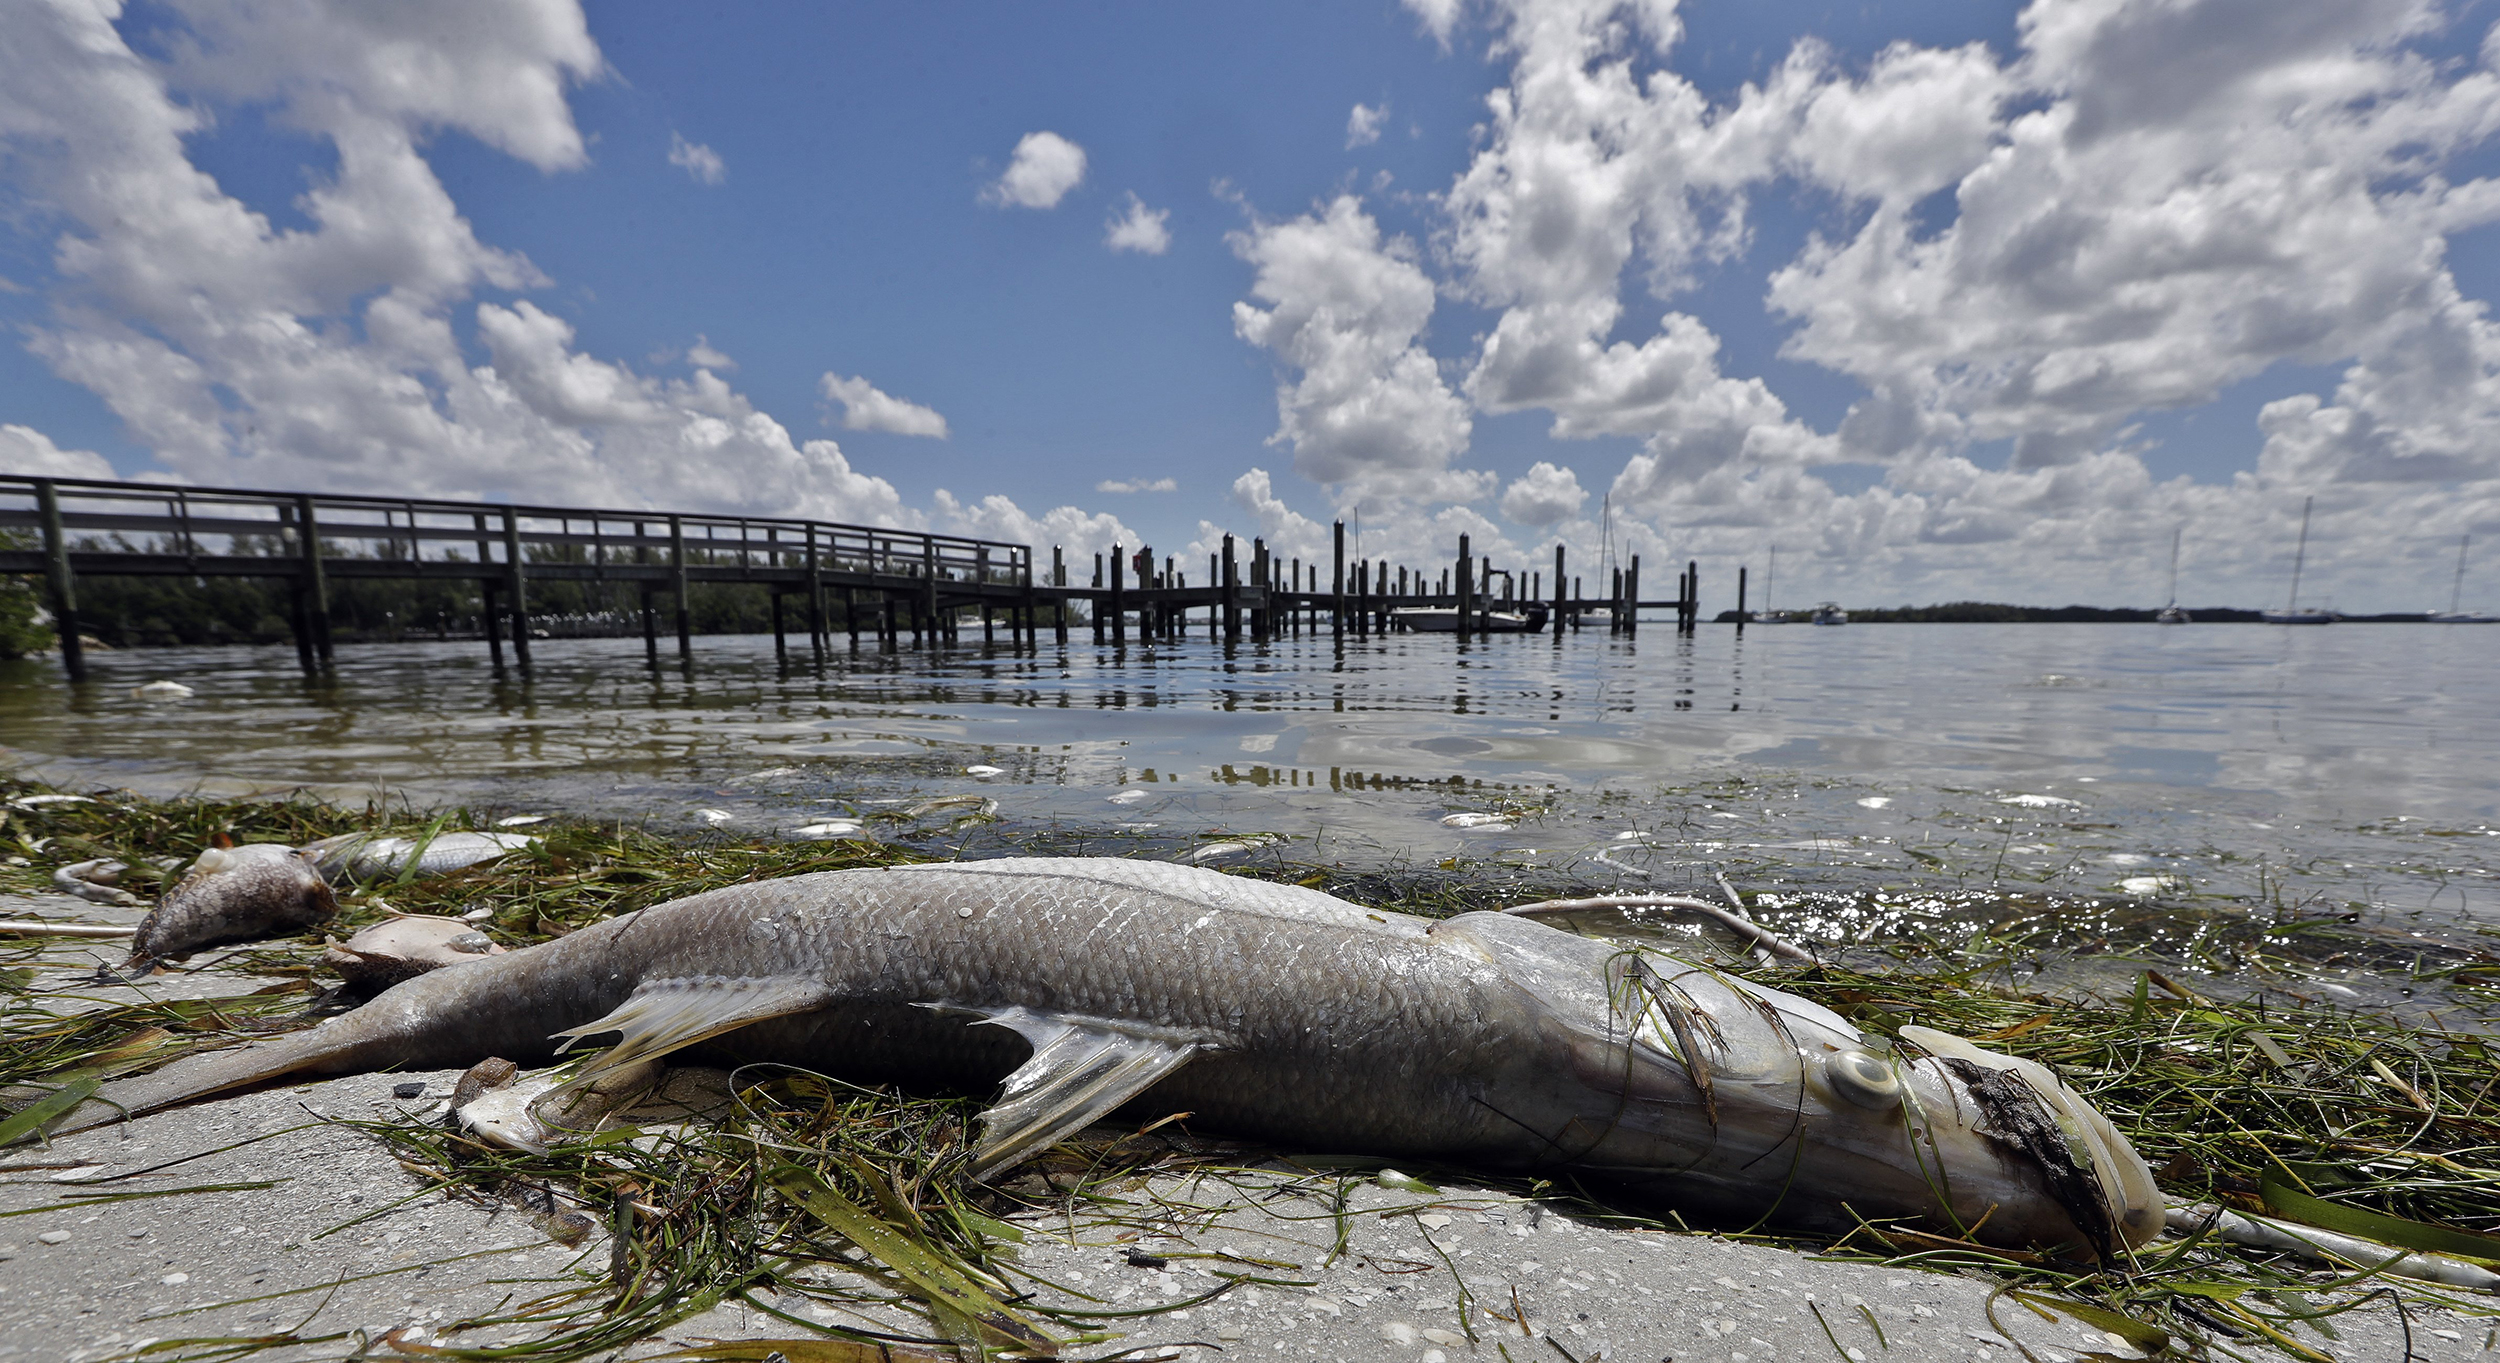 Toxic red tide: Florida researchers investigate what's